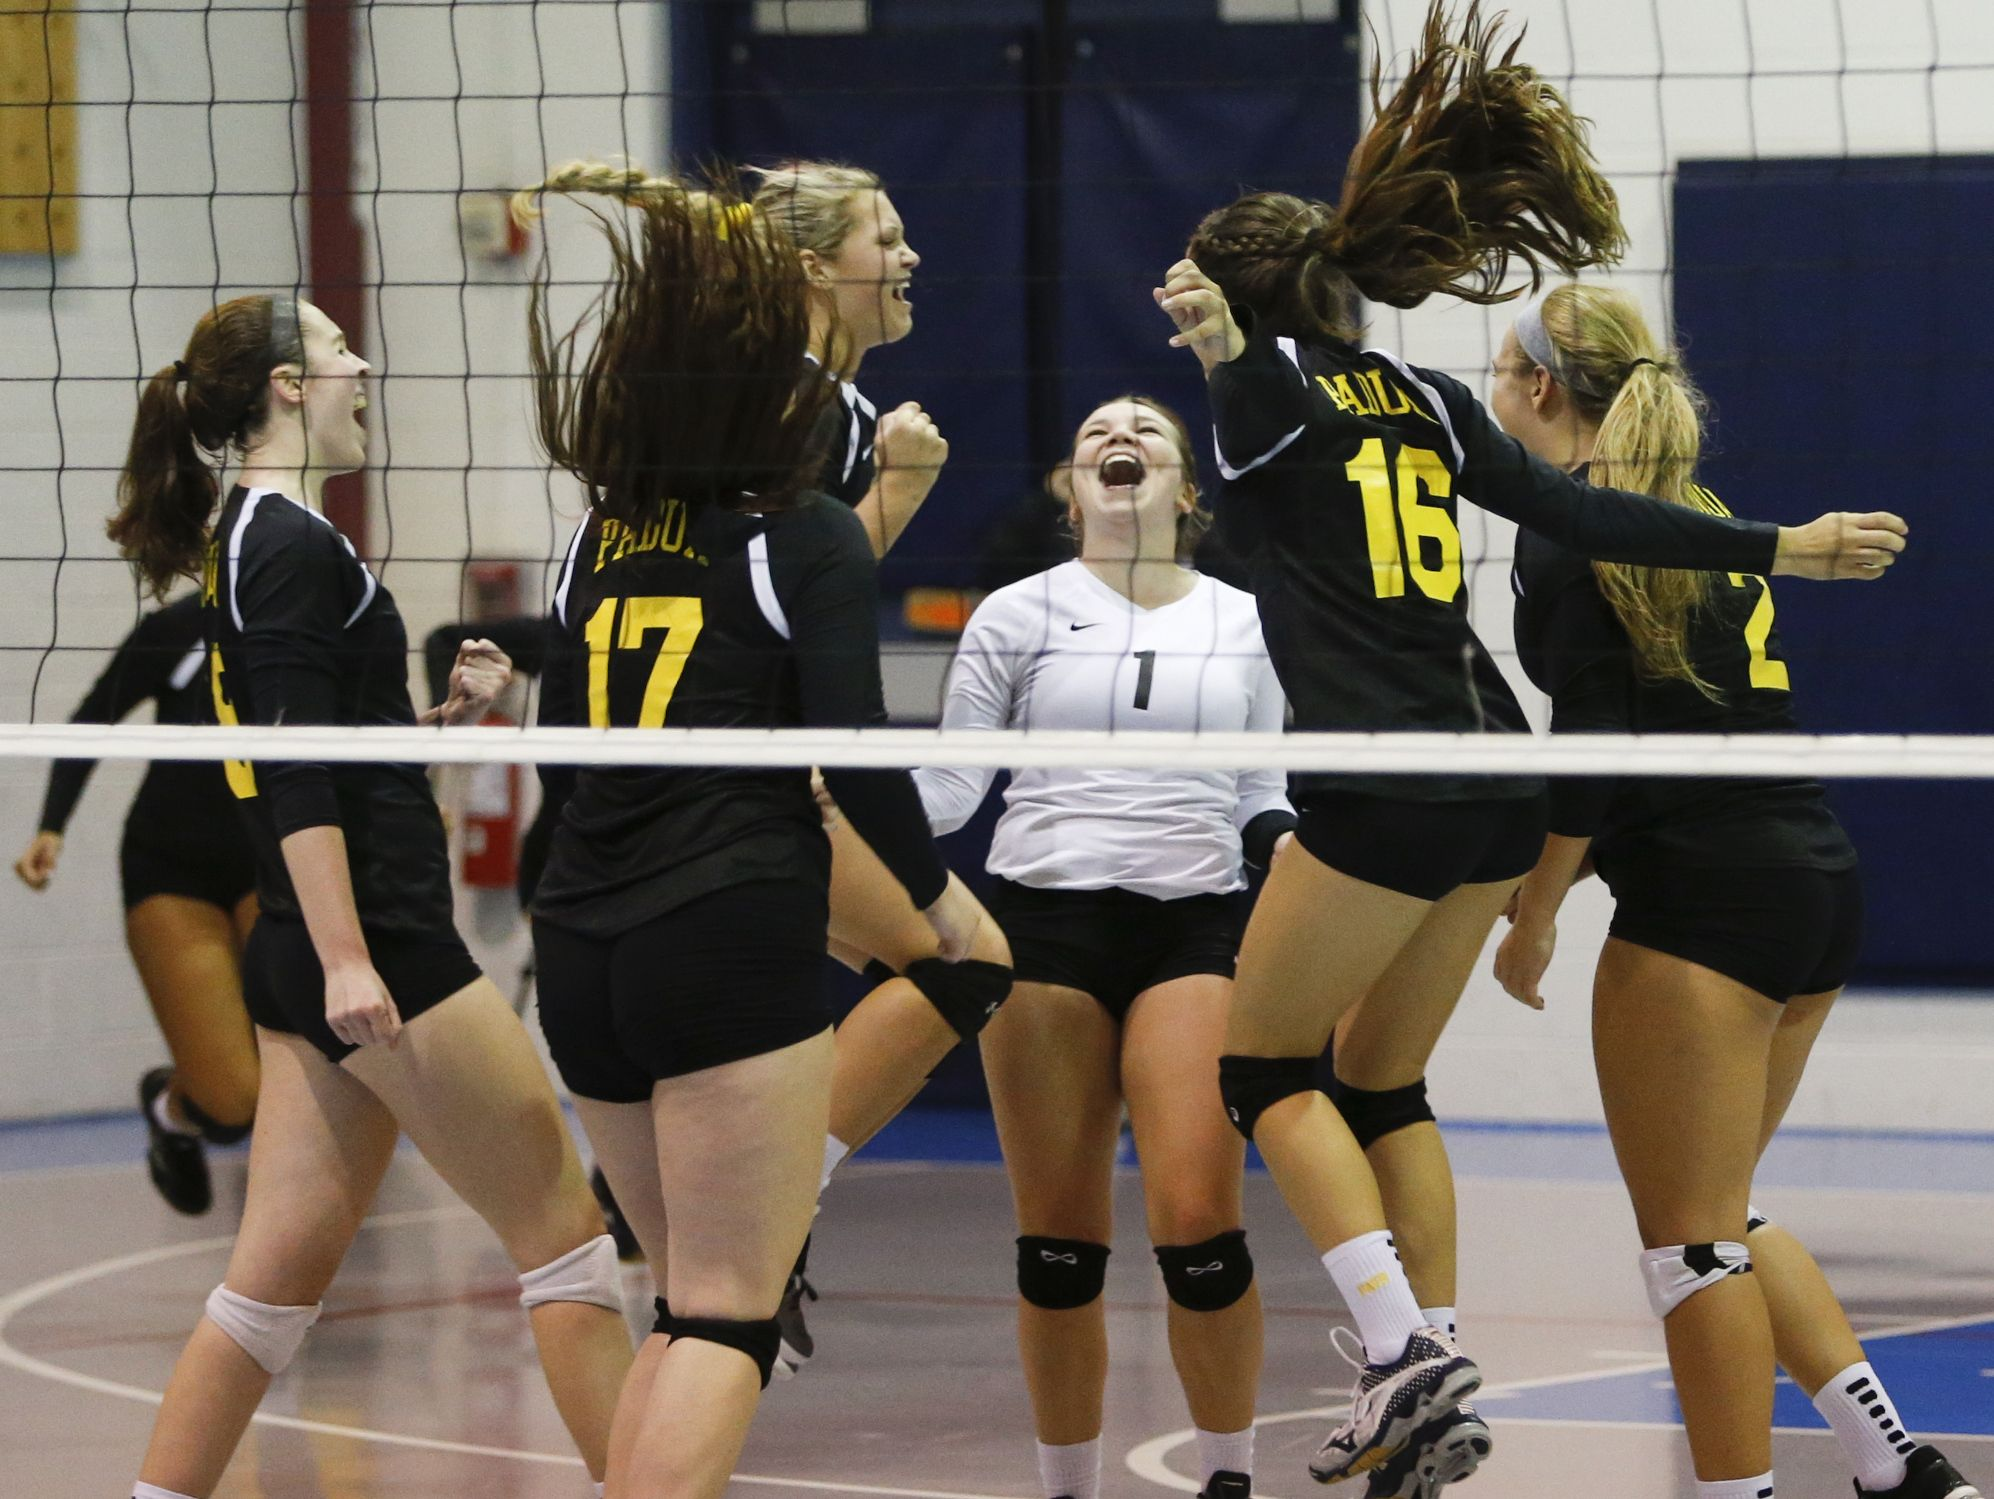 Padua celebrates after winning the third game and sweeping DMA, 3-0, at Delaware Military Academy Thursday.